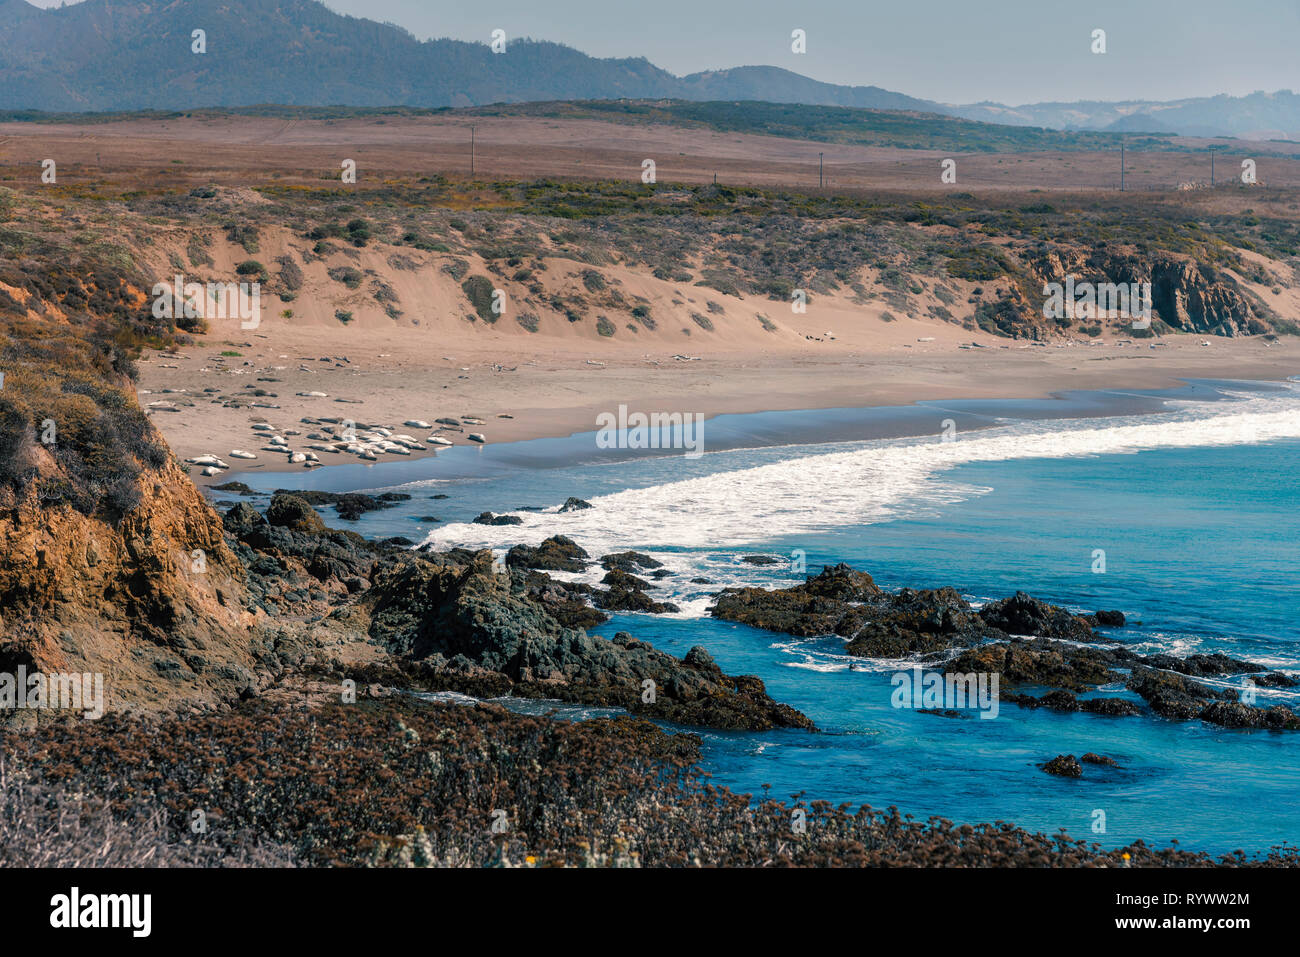 White ocean waves rolling onto sandy shoreline and beach below. Stock Photo